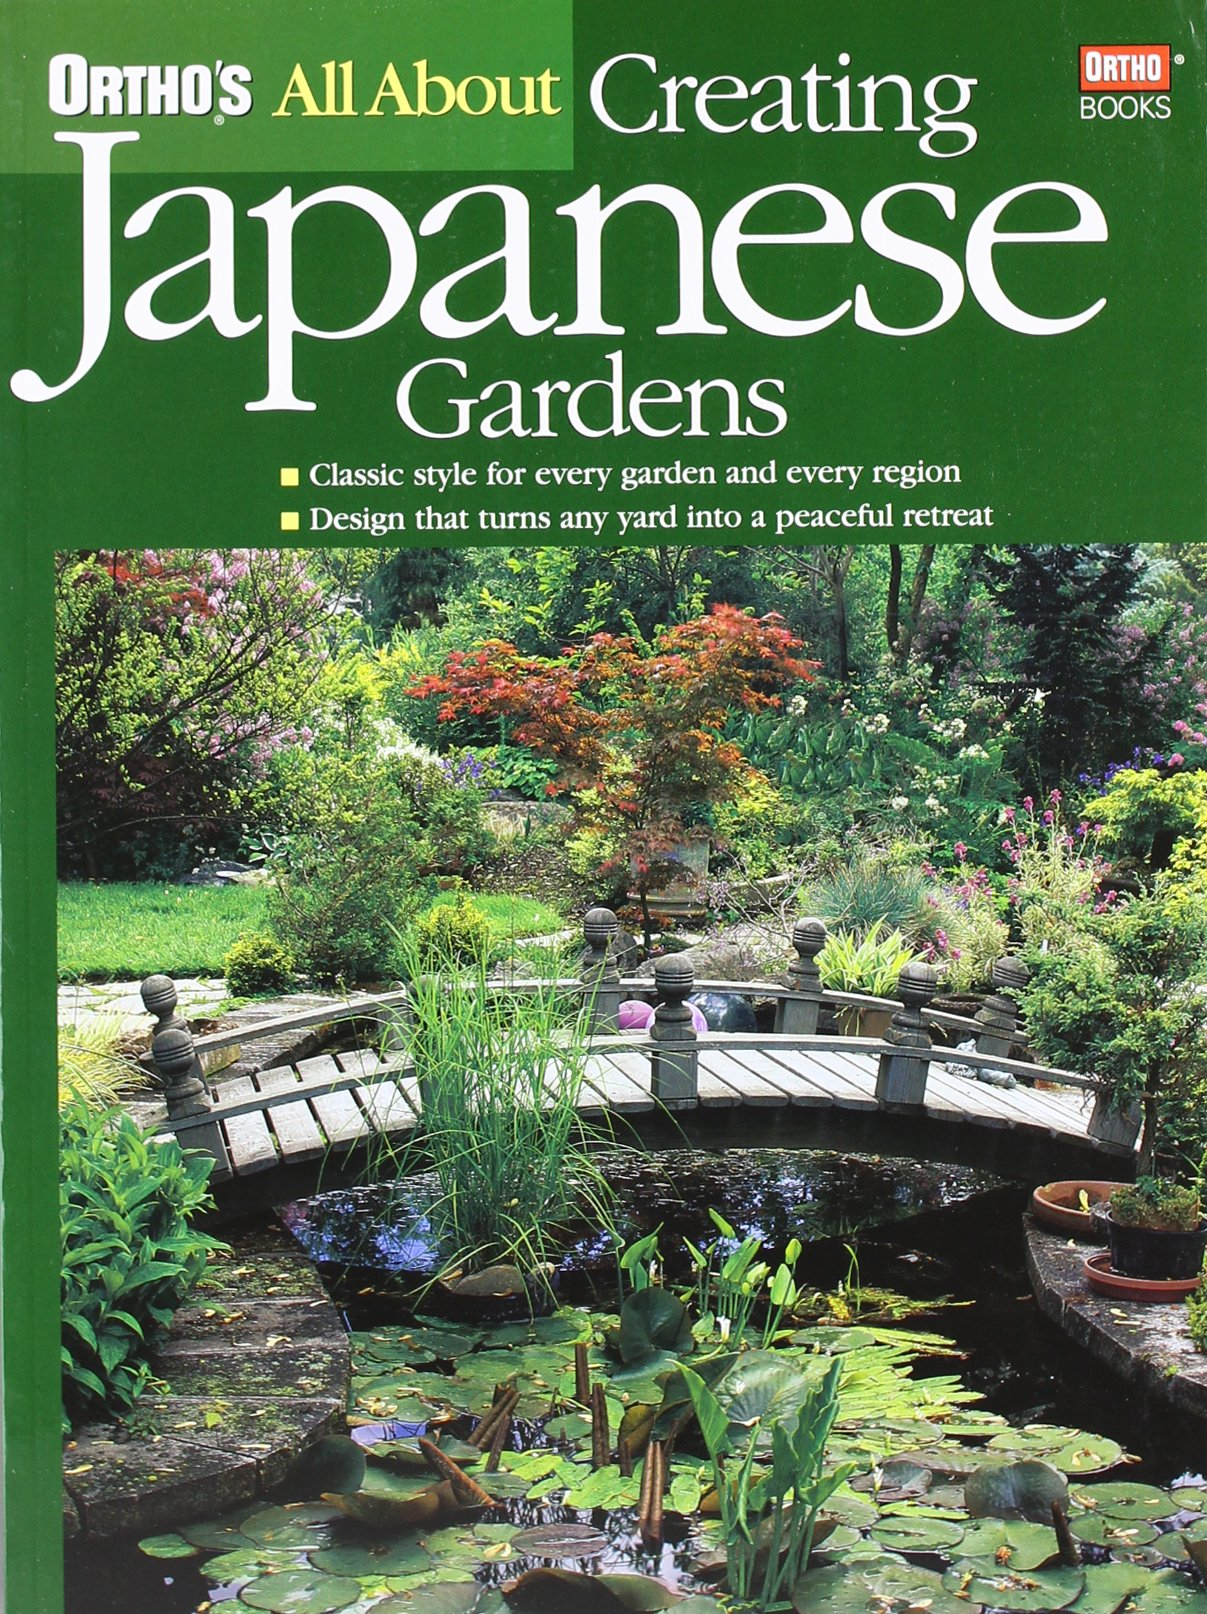 Orthou0027s All About Creating Japanese Gardens: Ortho: 0884754095341:  Amazon.com: Books Part 43